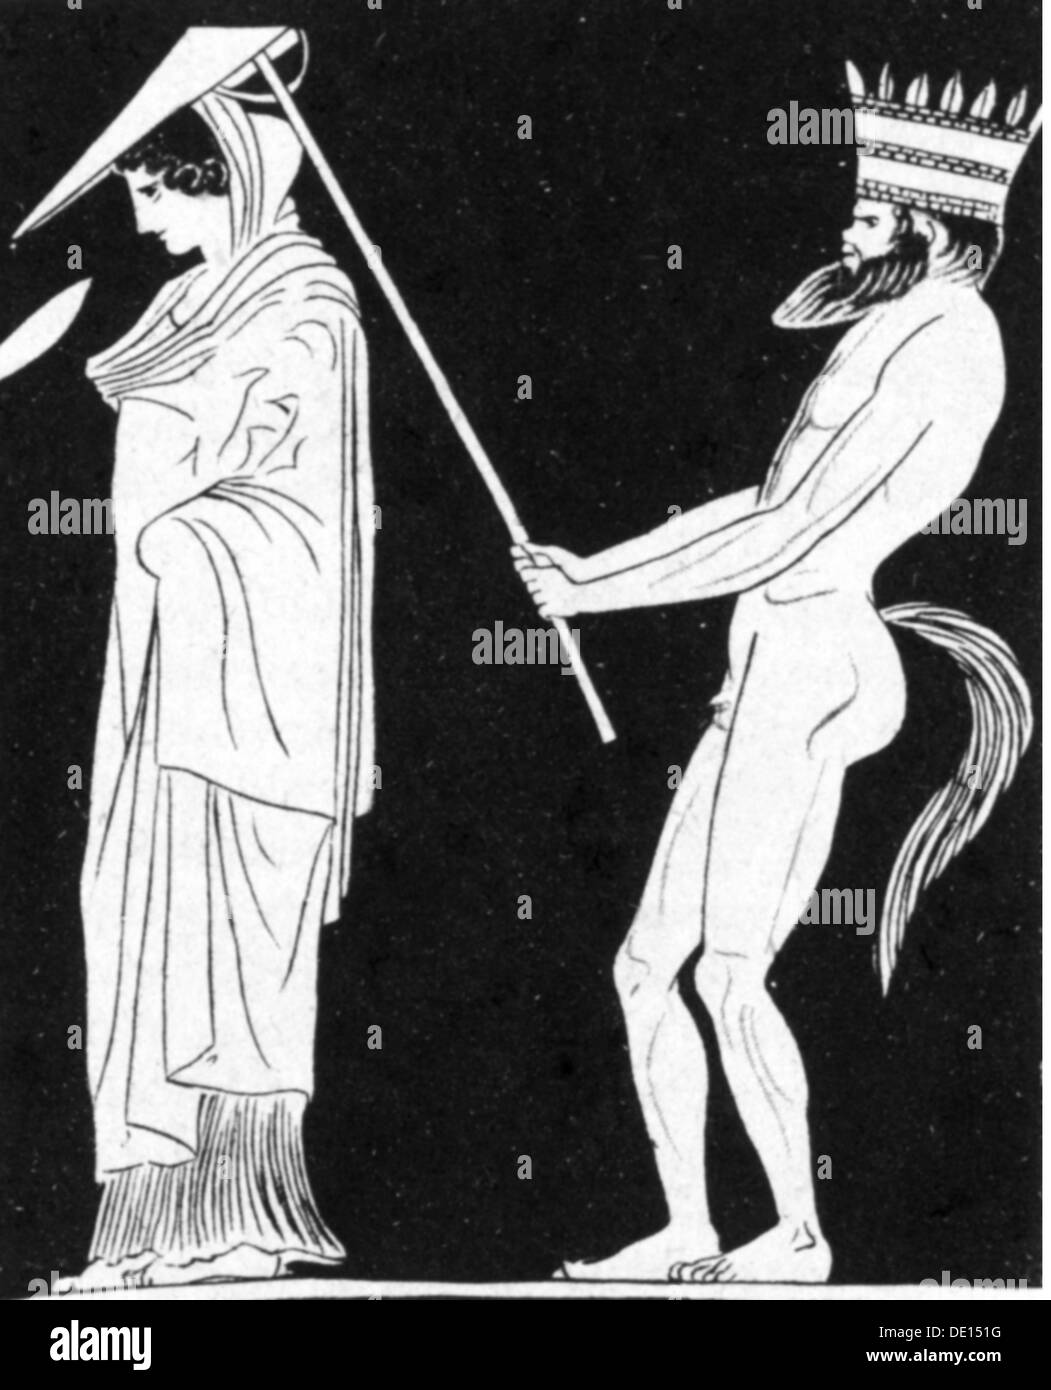 fashion, accessories, Greek lady with satyr carrying shade, after Ancient Greek vase, wood engraving, 19th century, 19th century, ancient world, ancient times, Greece, graphic, graphics, caricature, caricatures, humor, humour, satire, shade, shades, sunshade, sunshades, full length, standing, holding, hold, servant, servants, manservant, menservants, satyr, mythological creatures, mythical creature, fabulous creature, fabulous being, mythological creature, mythical creatures, fabulous creatures, fabulous beings, fabulous animal, fabulous animals, crown, crowns,, Additional-Rights-Clearences-NA - Stock Image